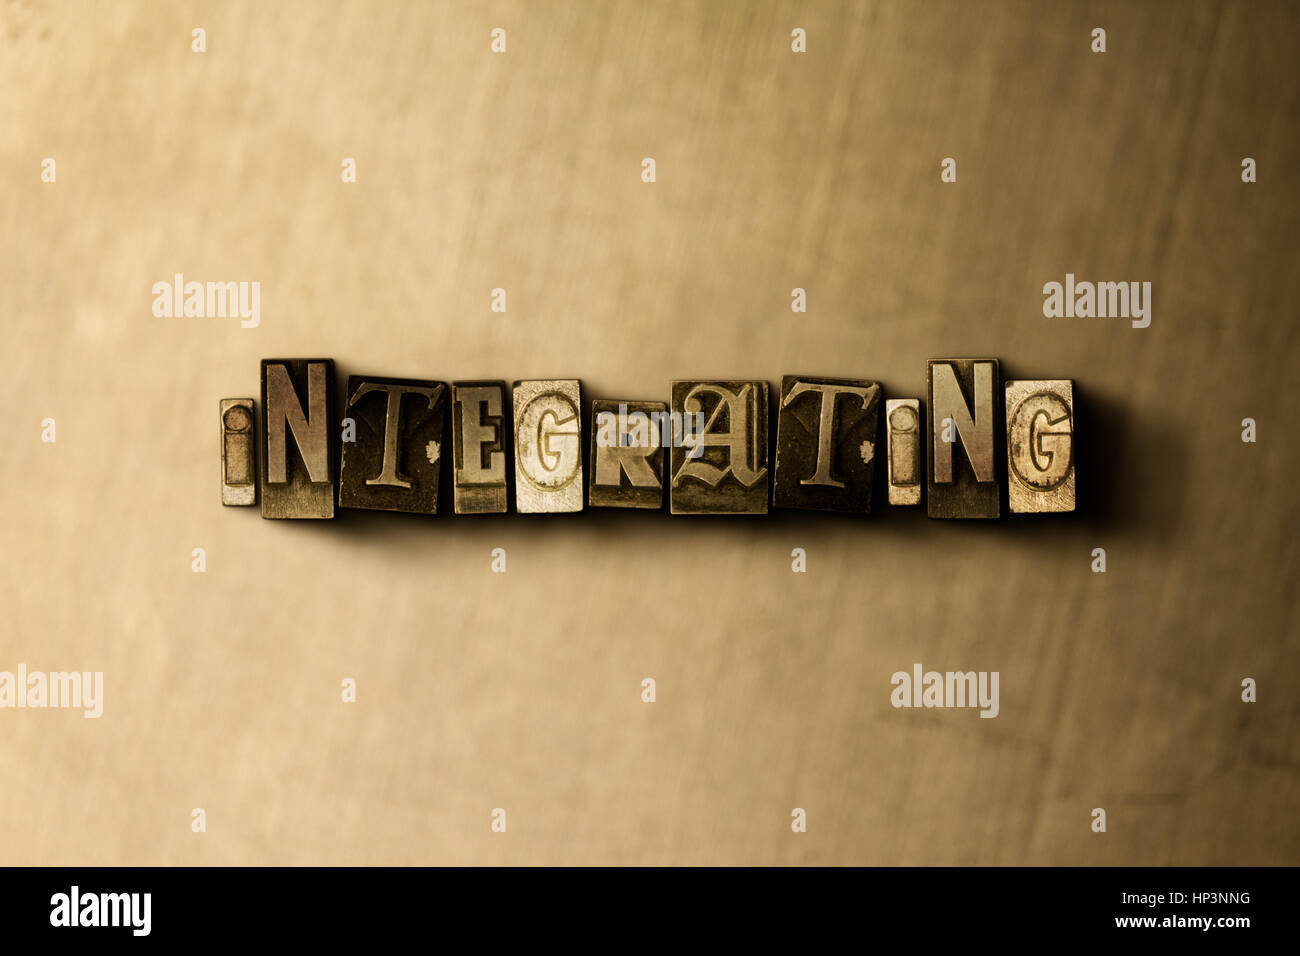 INTEGRATING - close-up of grungy vintage typeset word on metal backdrop. Royalty free stock illustration.  Can be - Stock Image